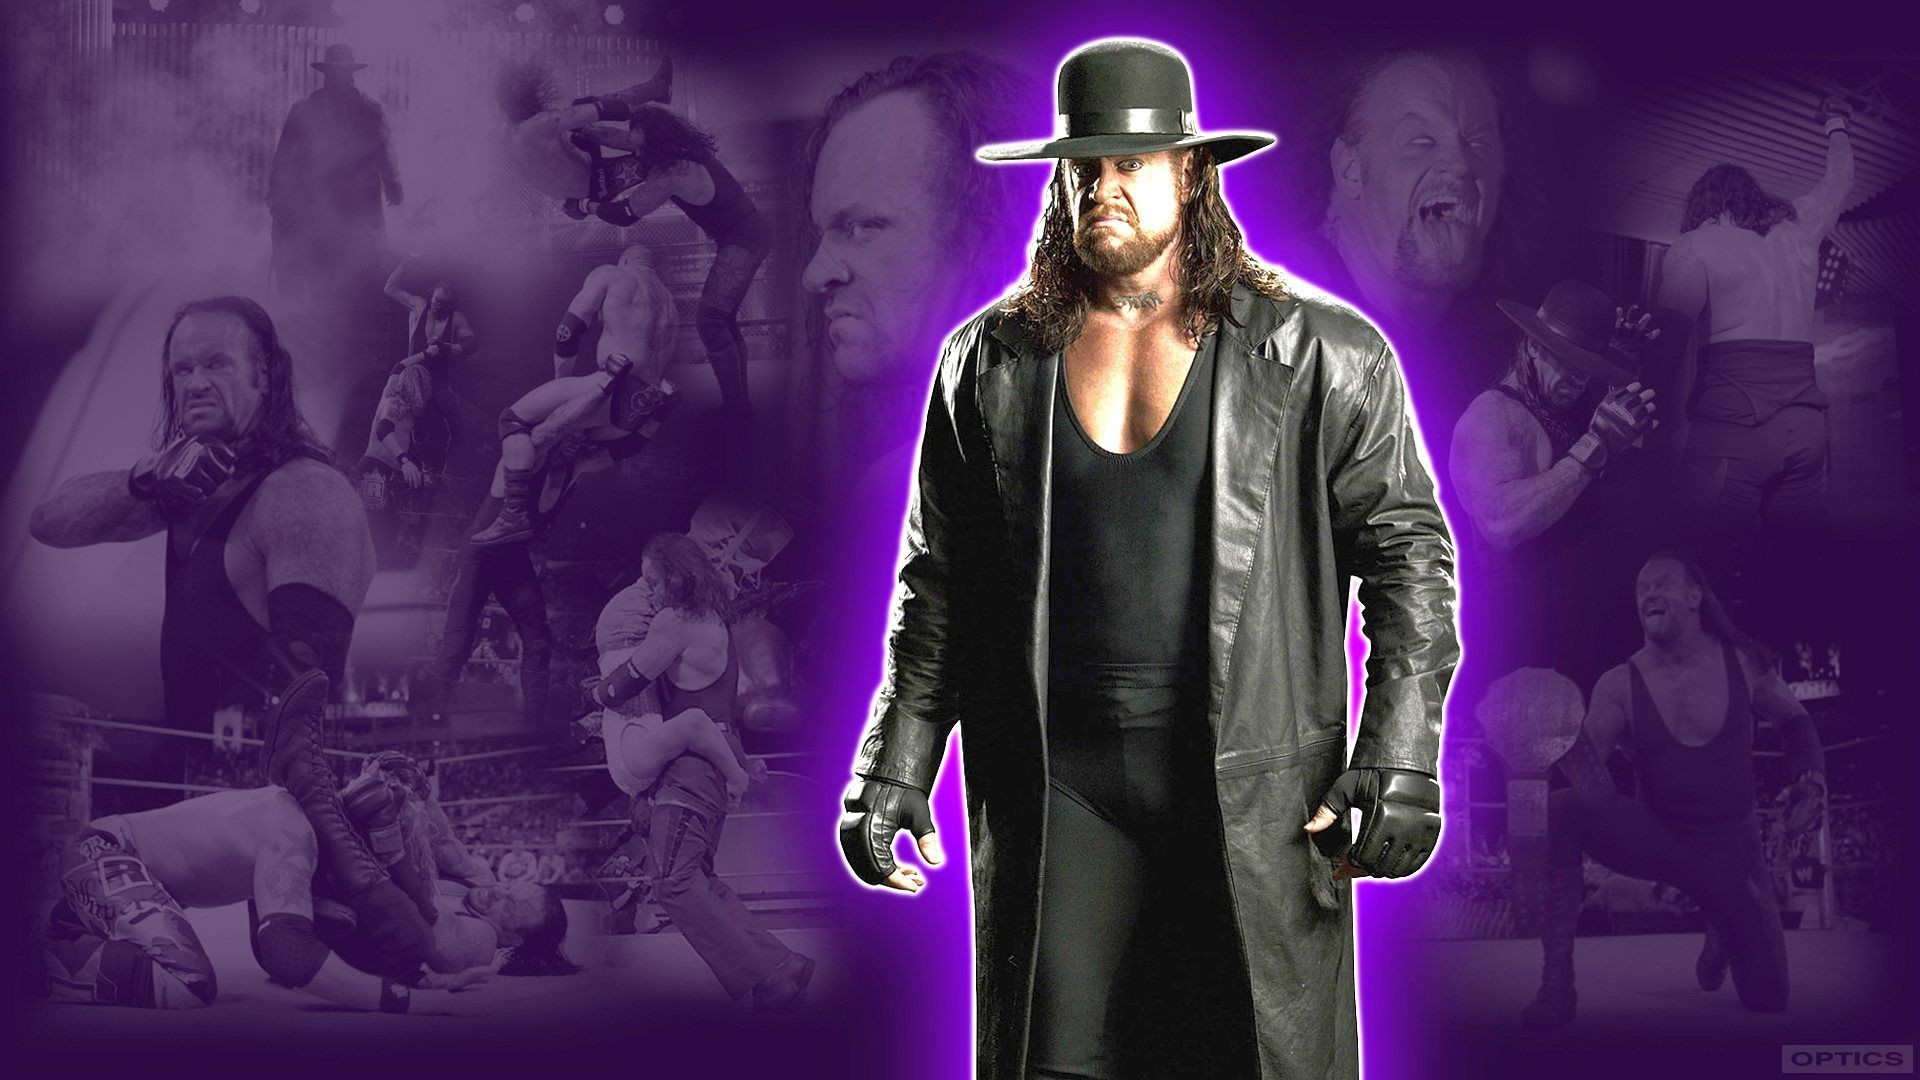 Hd Undertaker Unique Wallpapers Related Post